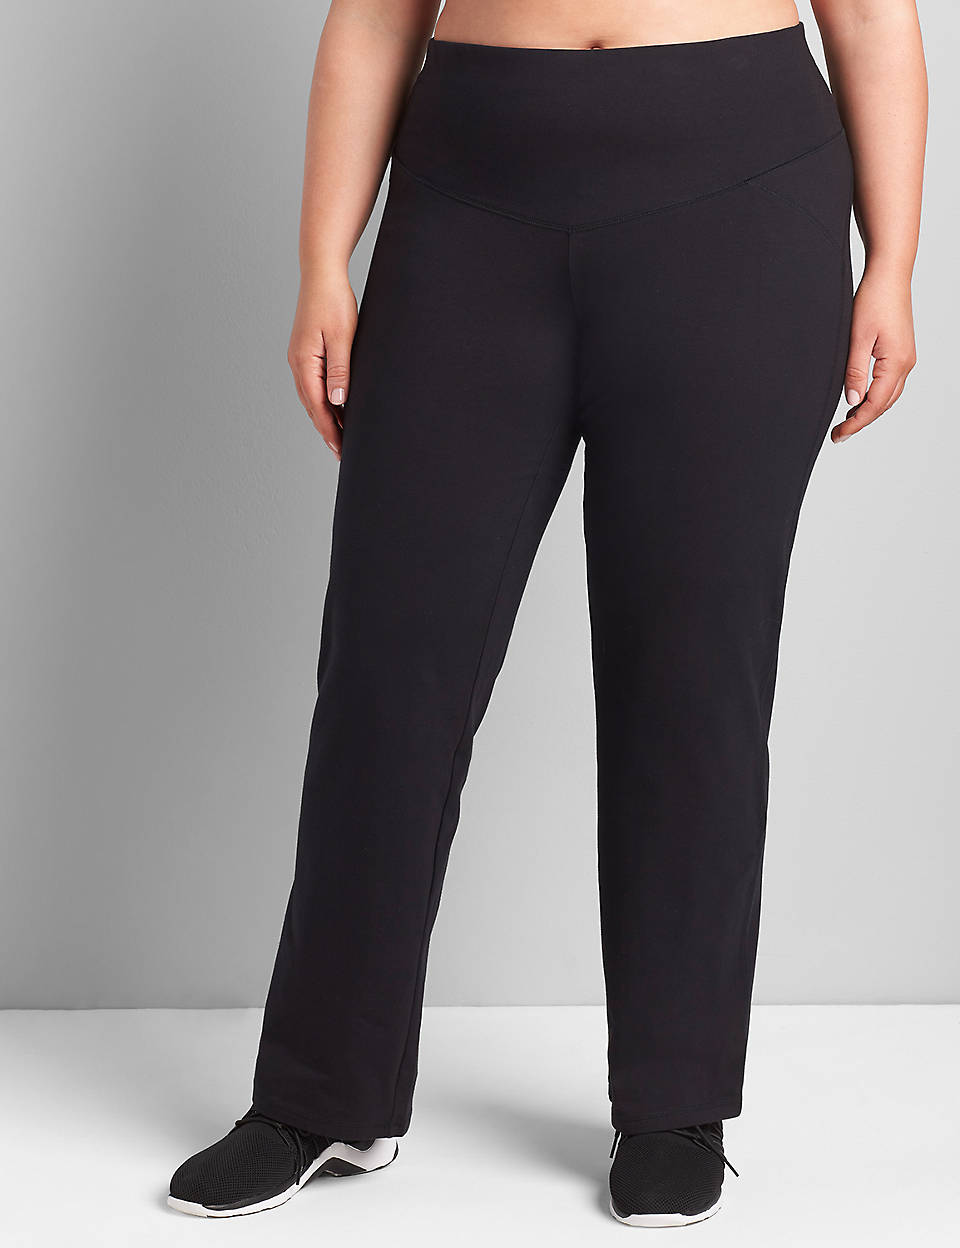 3a887e684aaac6 Control Tech Smoothing Yoga Pant | Lane Bryant